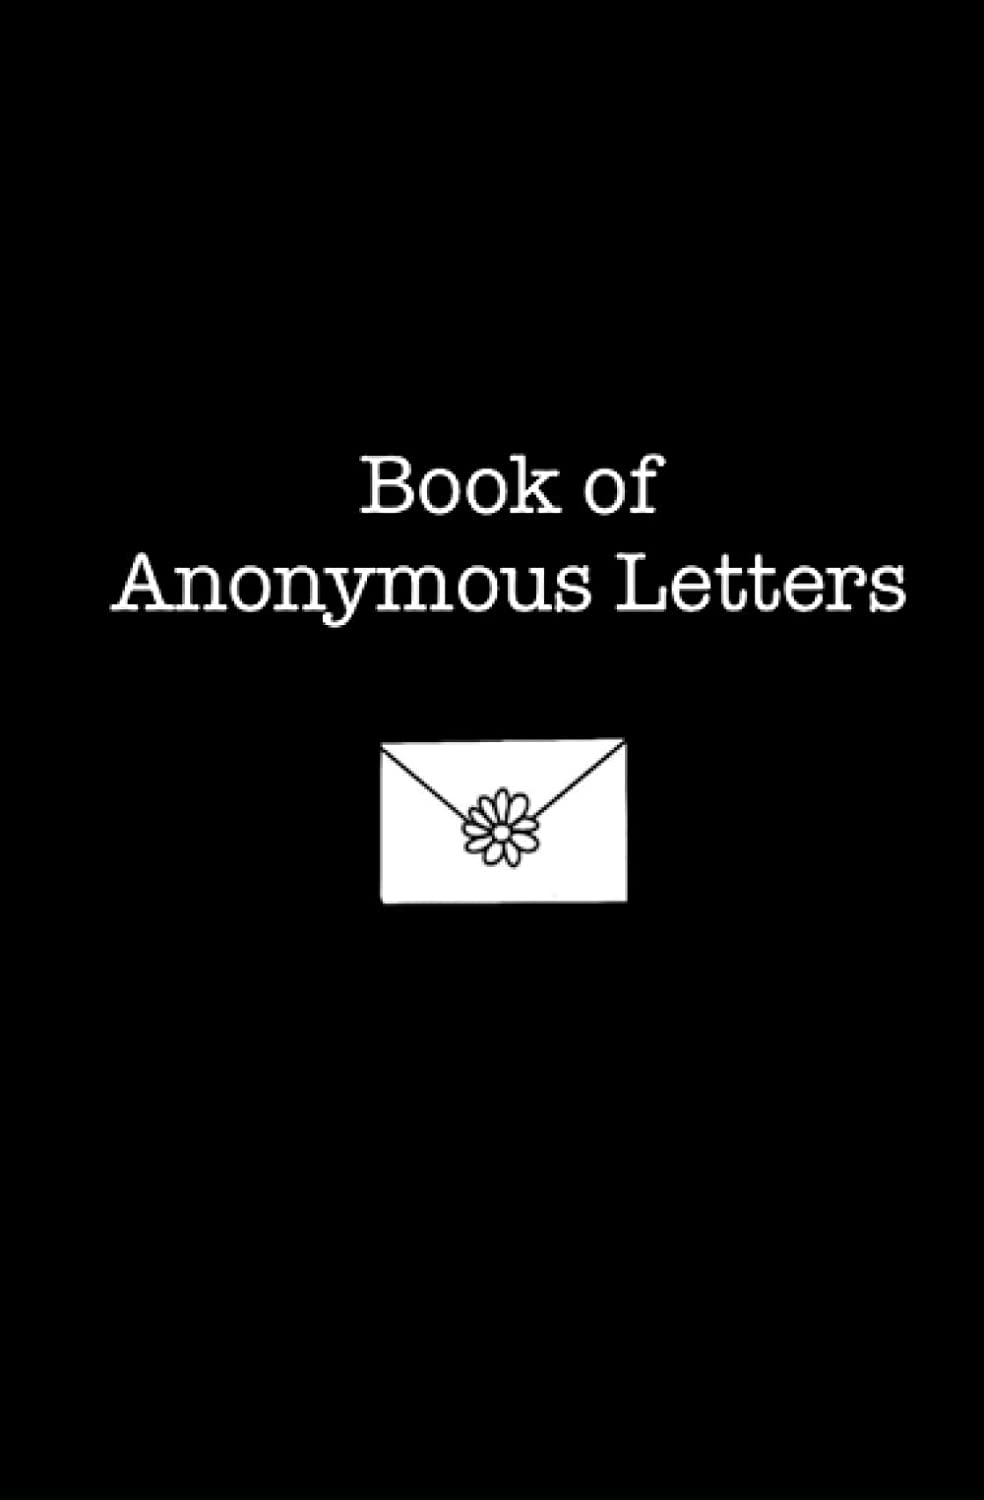 Book of Anonymous Letters